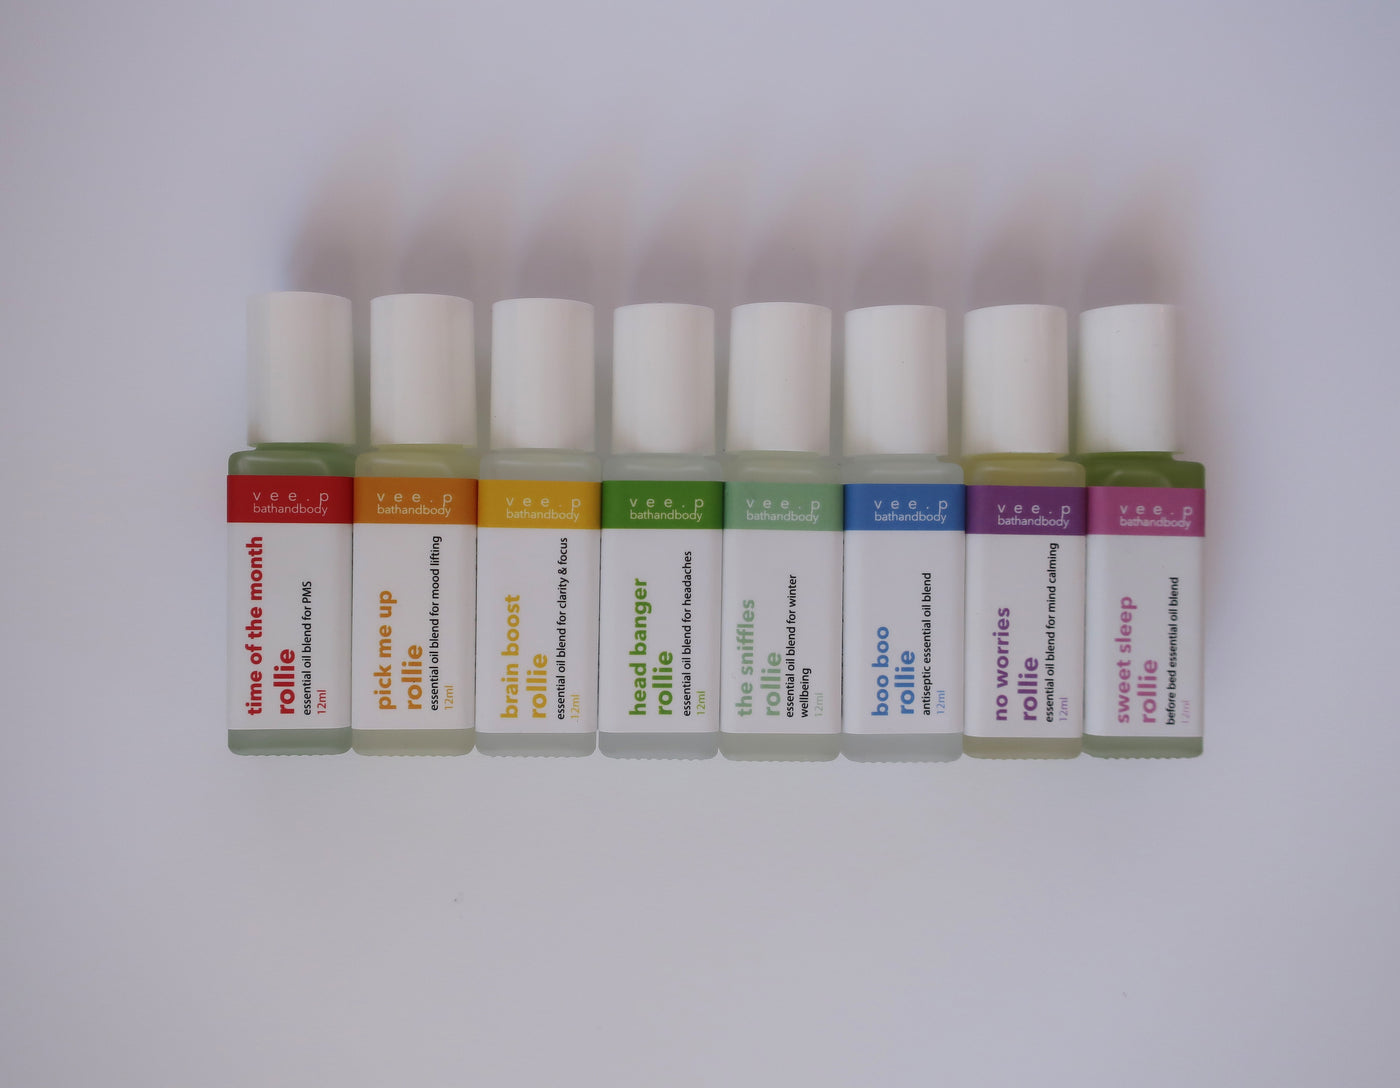 Sweet Sleep Rollie - Before Bed Essential Oil Blend Roll-on